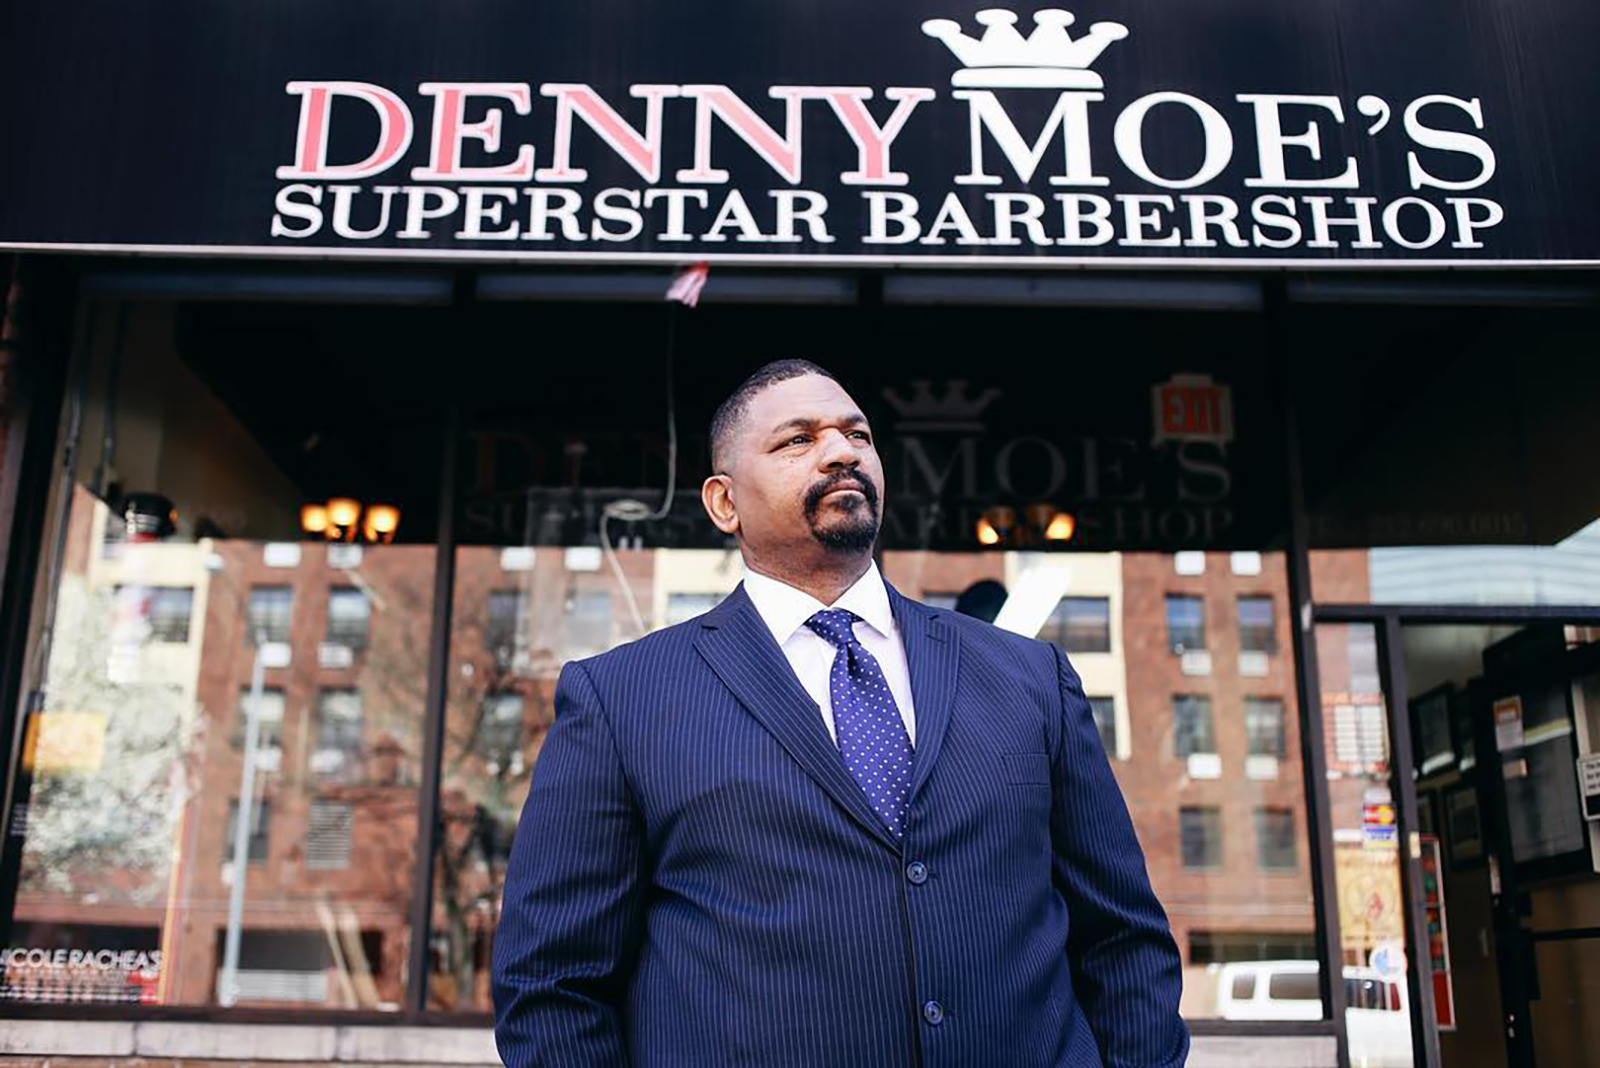 "Dennis ""Denny Moe"" Mitchell, 54, stands outside of Denny Moe's Superstar Barbershop in Harlem, New York in an undated photo."